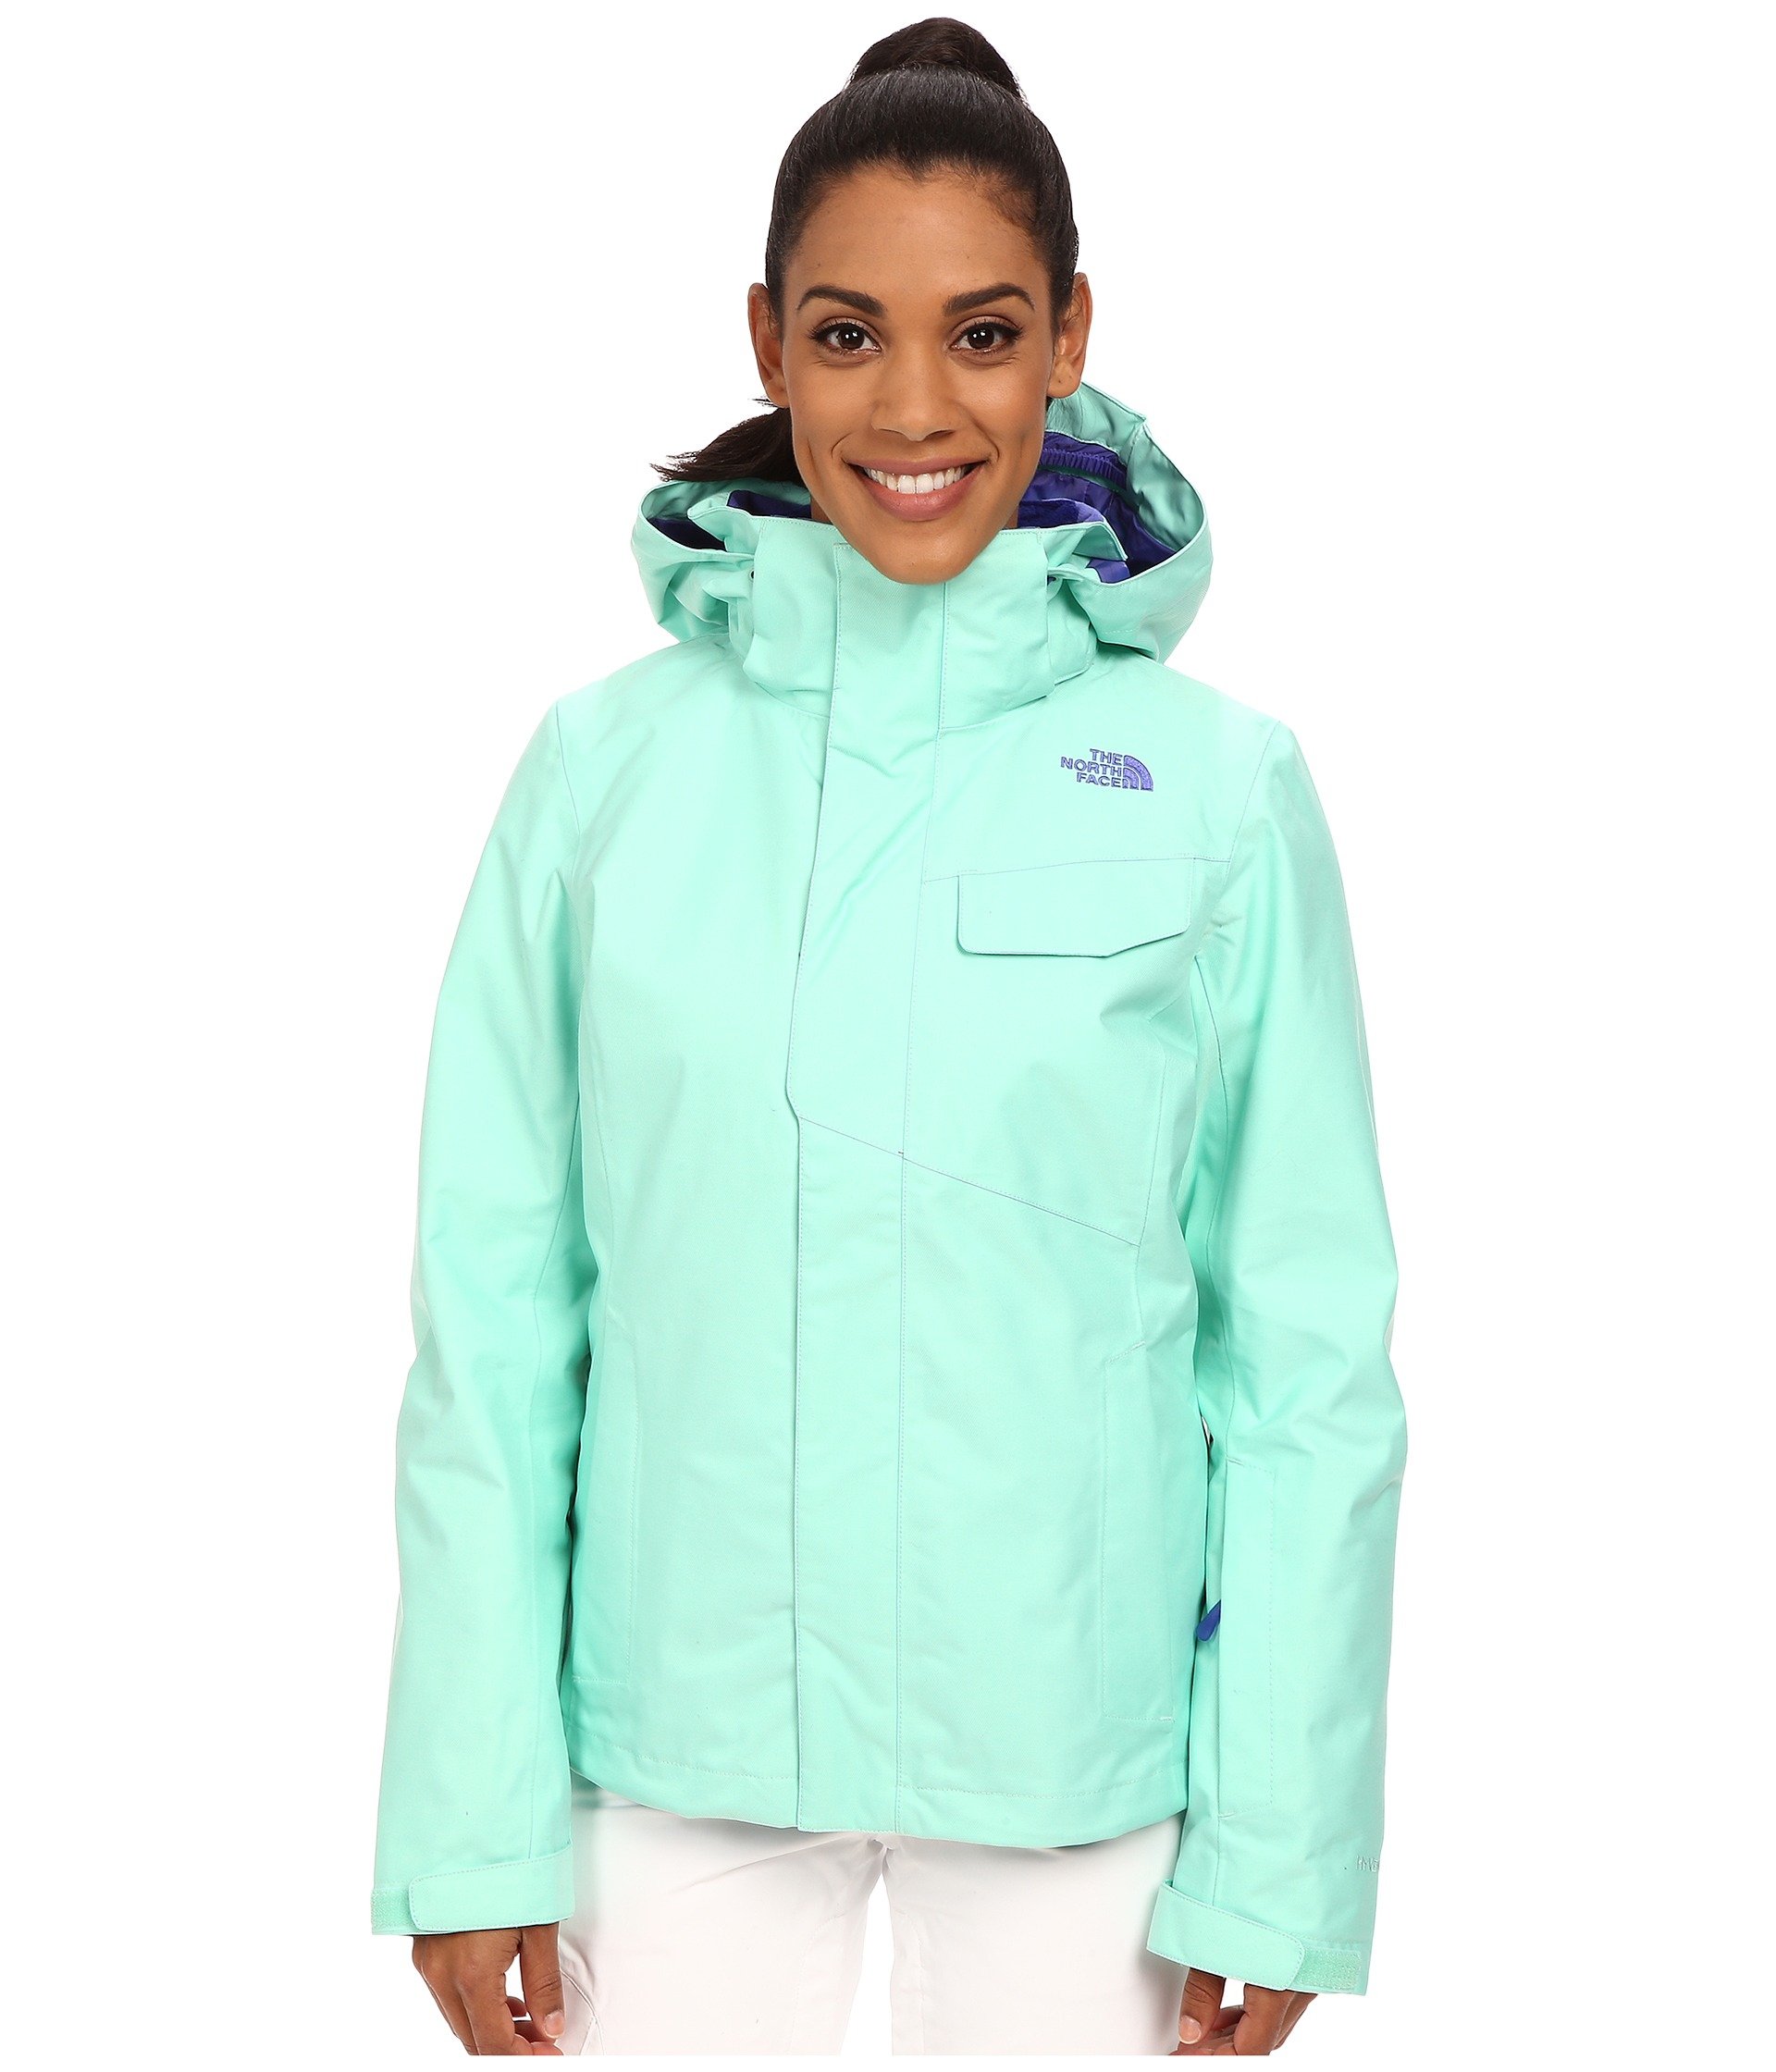 caac61a2a The North Face Green Helata Triclimate® Jacket